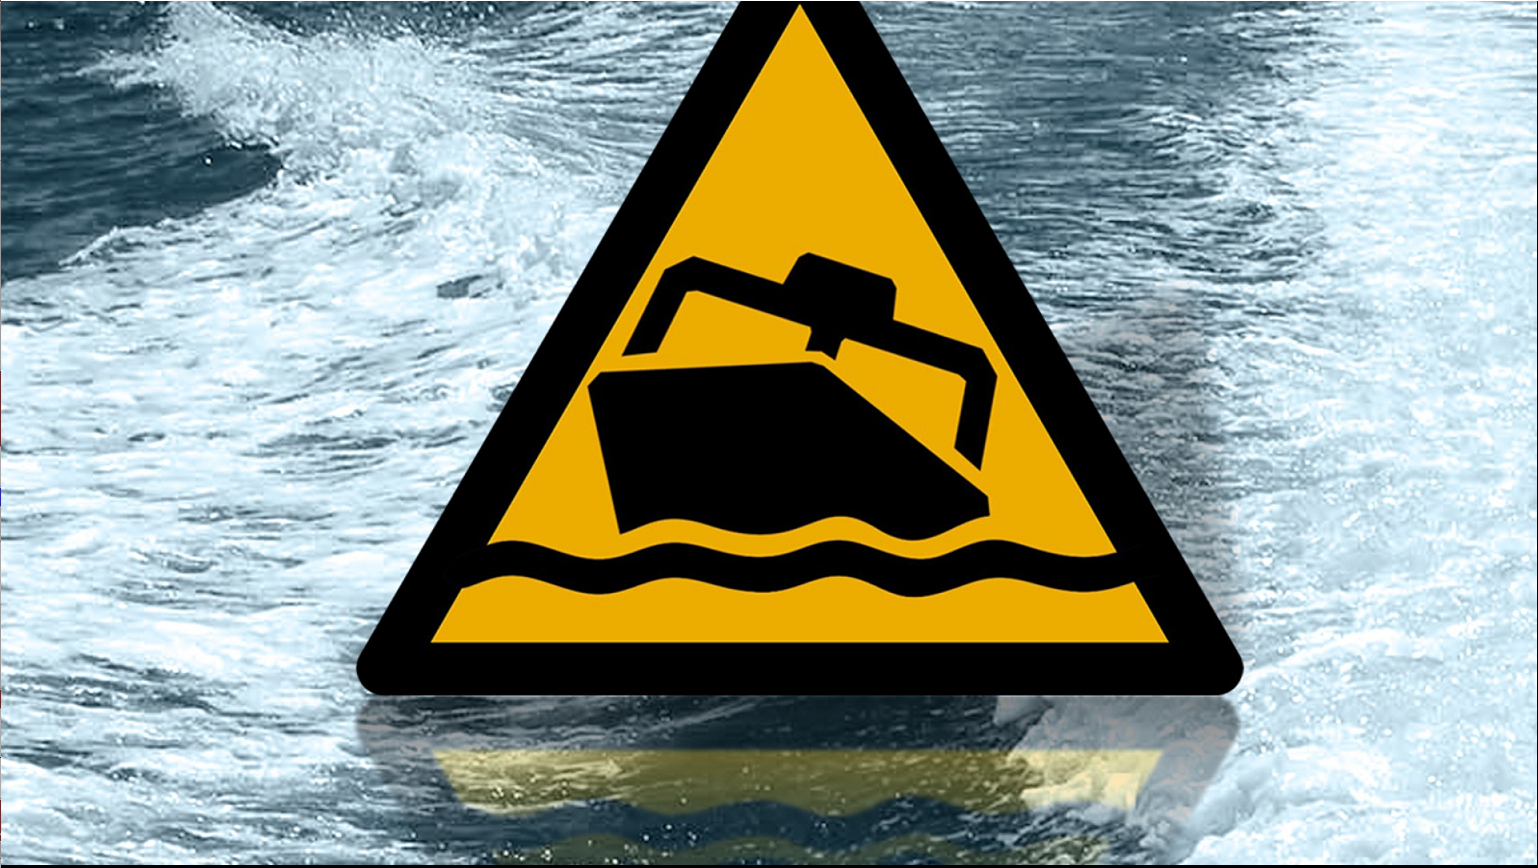 boat accident_1548123321489.PNG.jpg